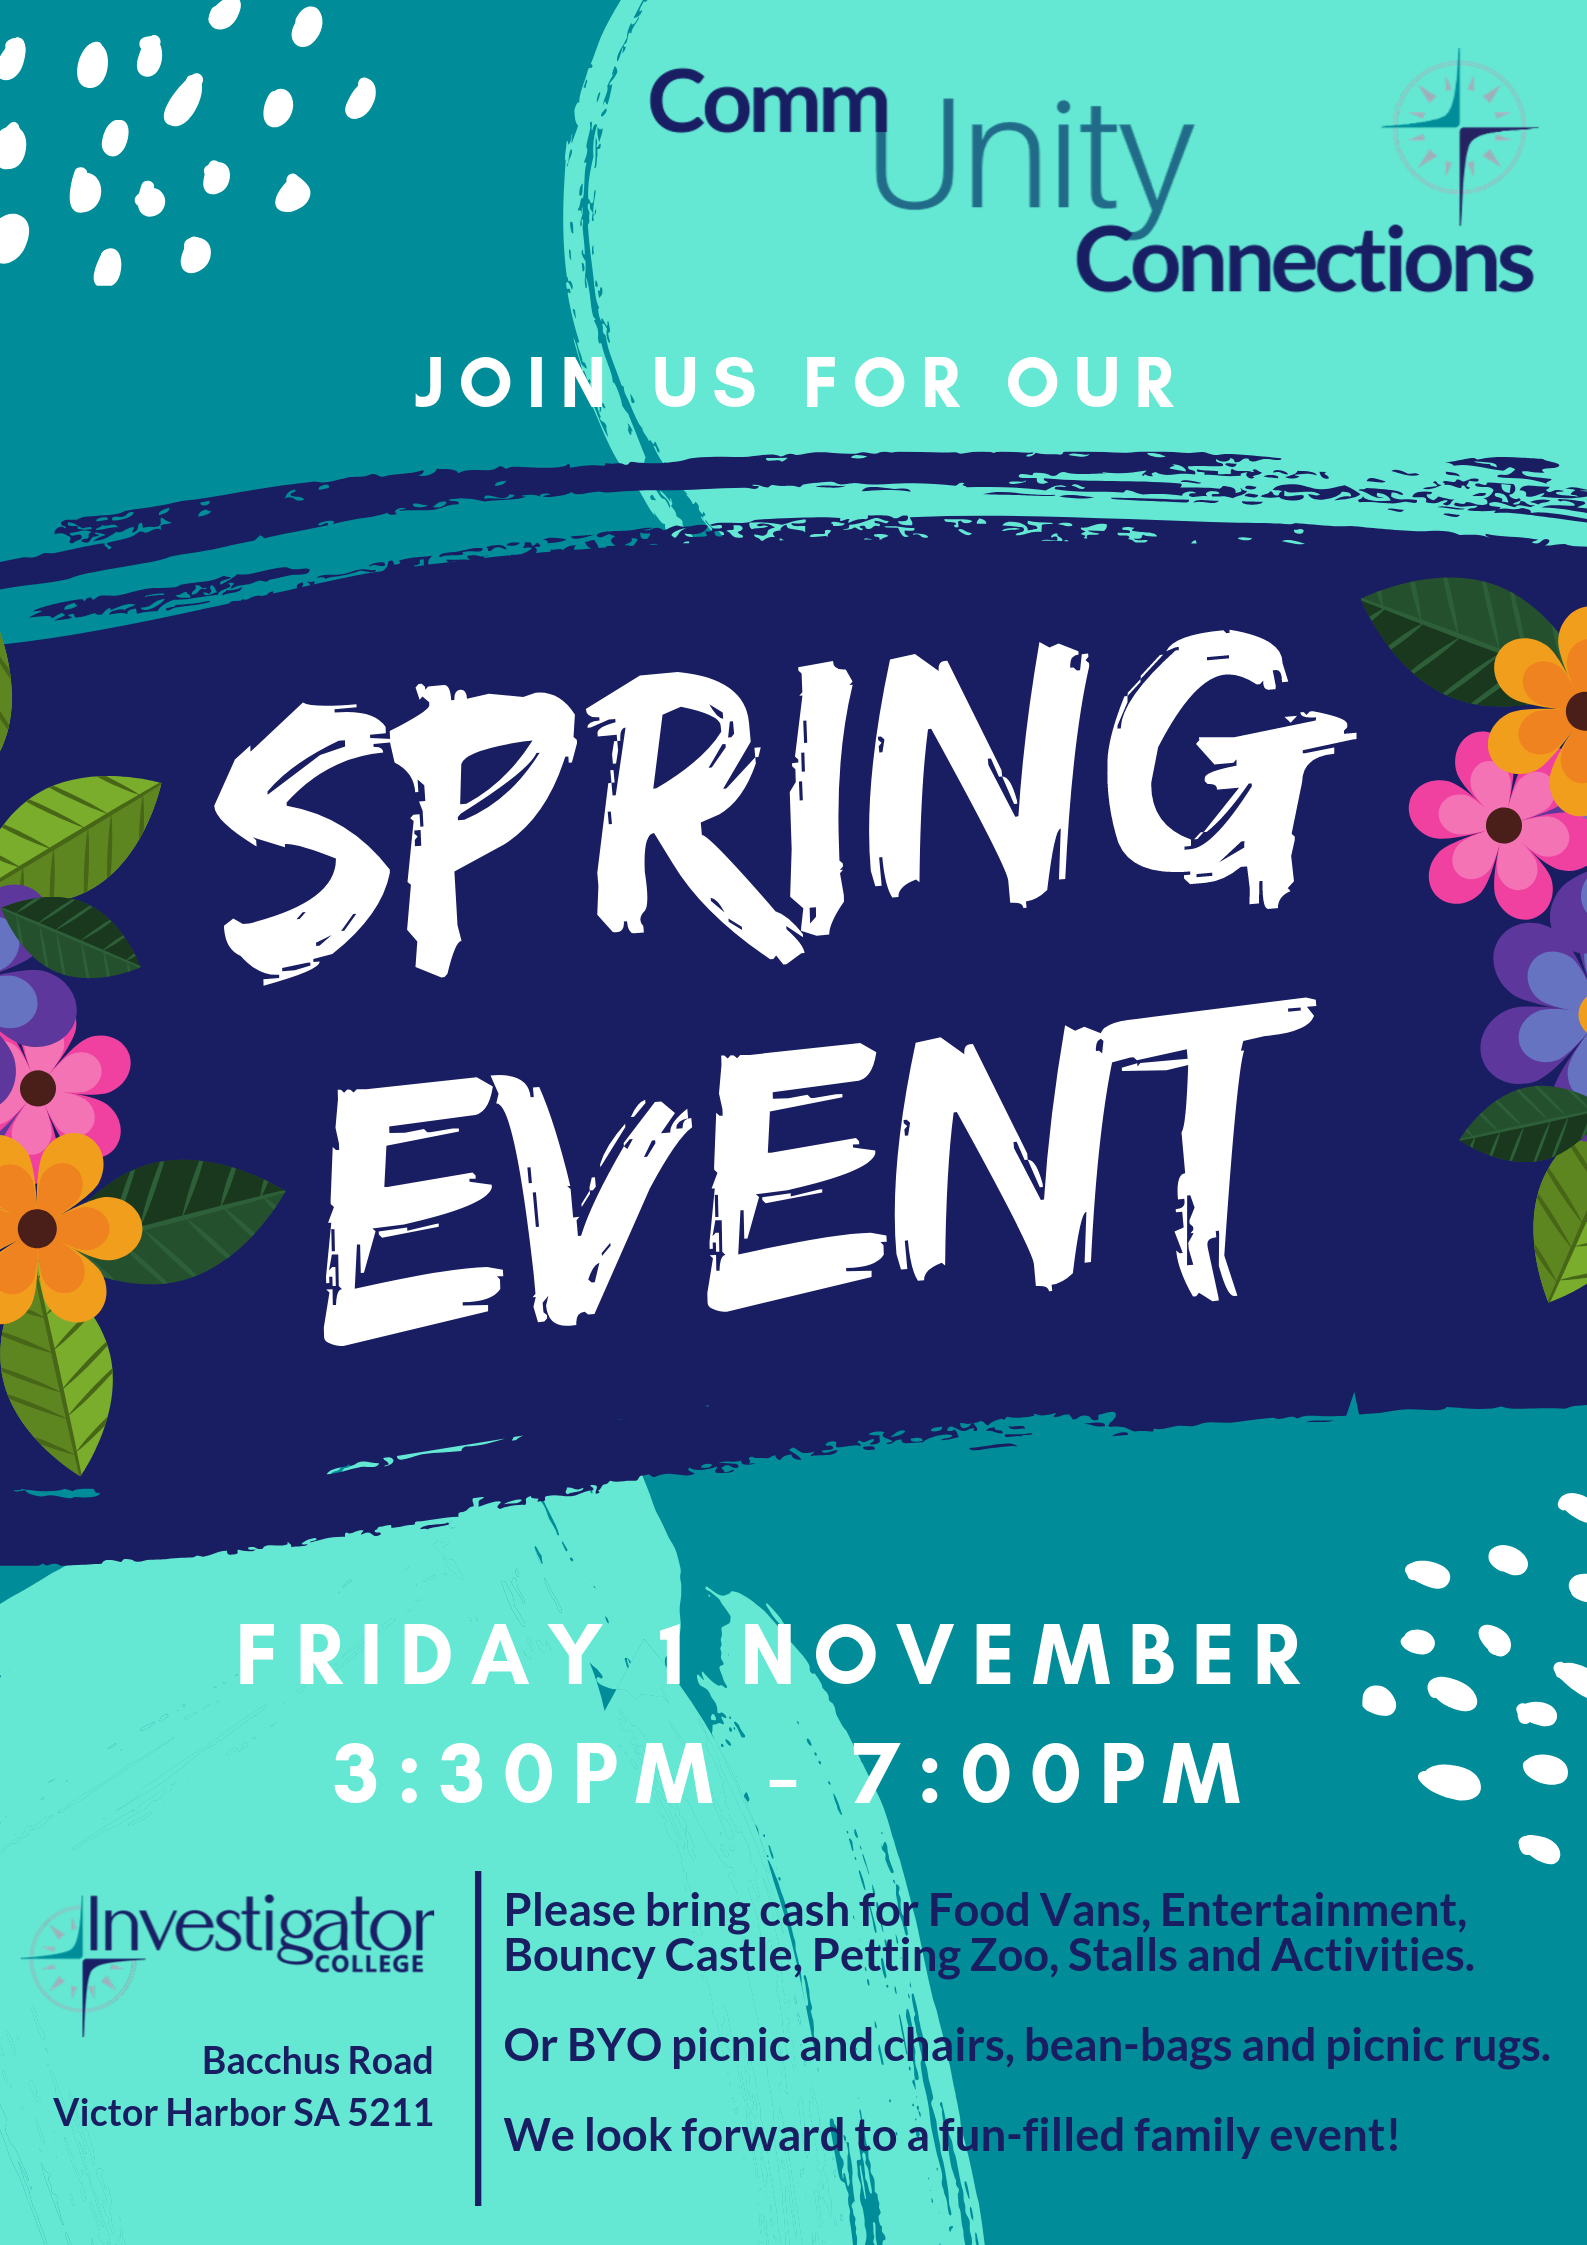 Join us for our Spring Event!